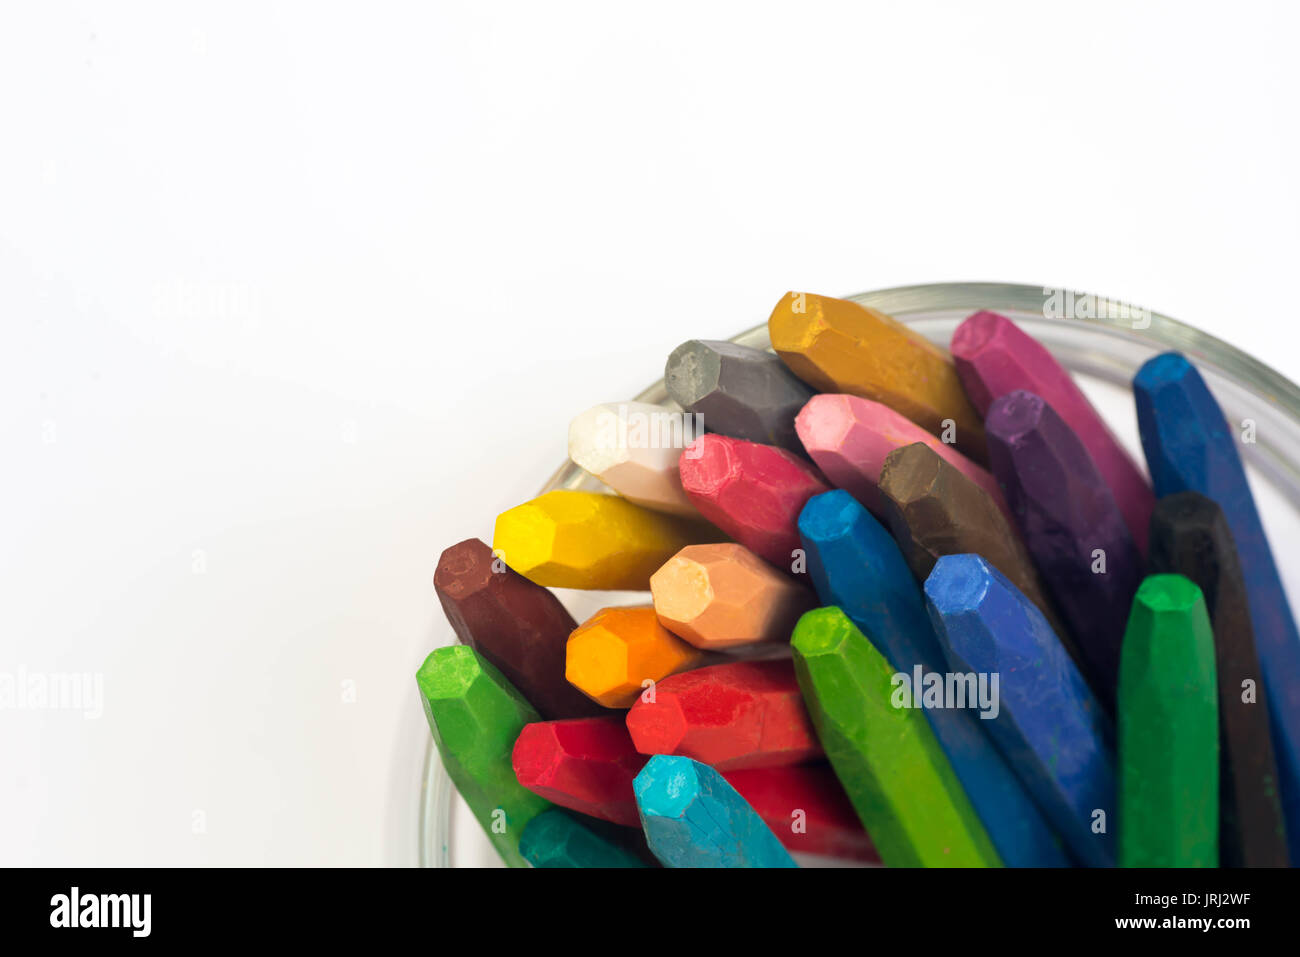 multicolored crayons in cup on white paper - Stock Image